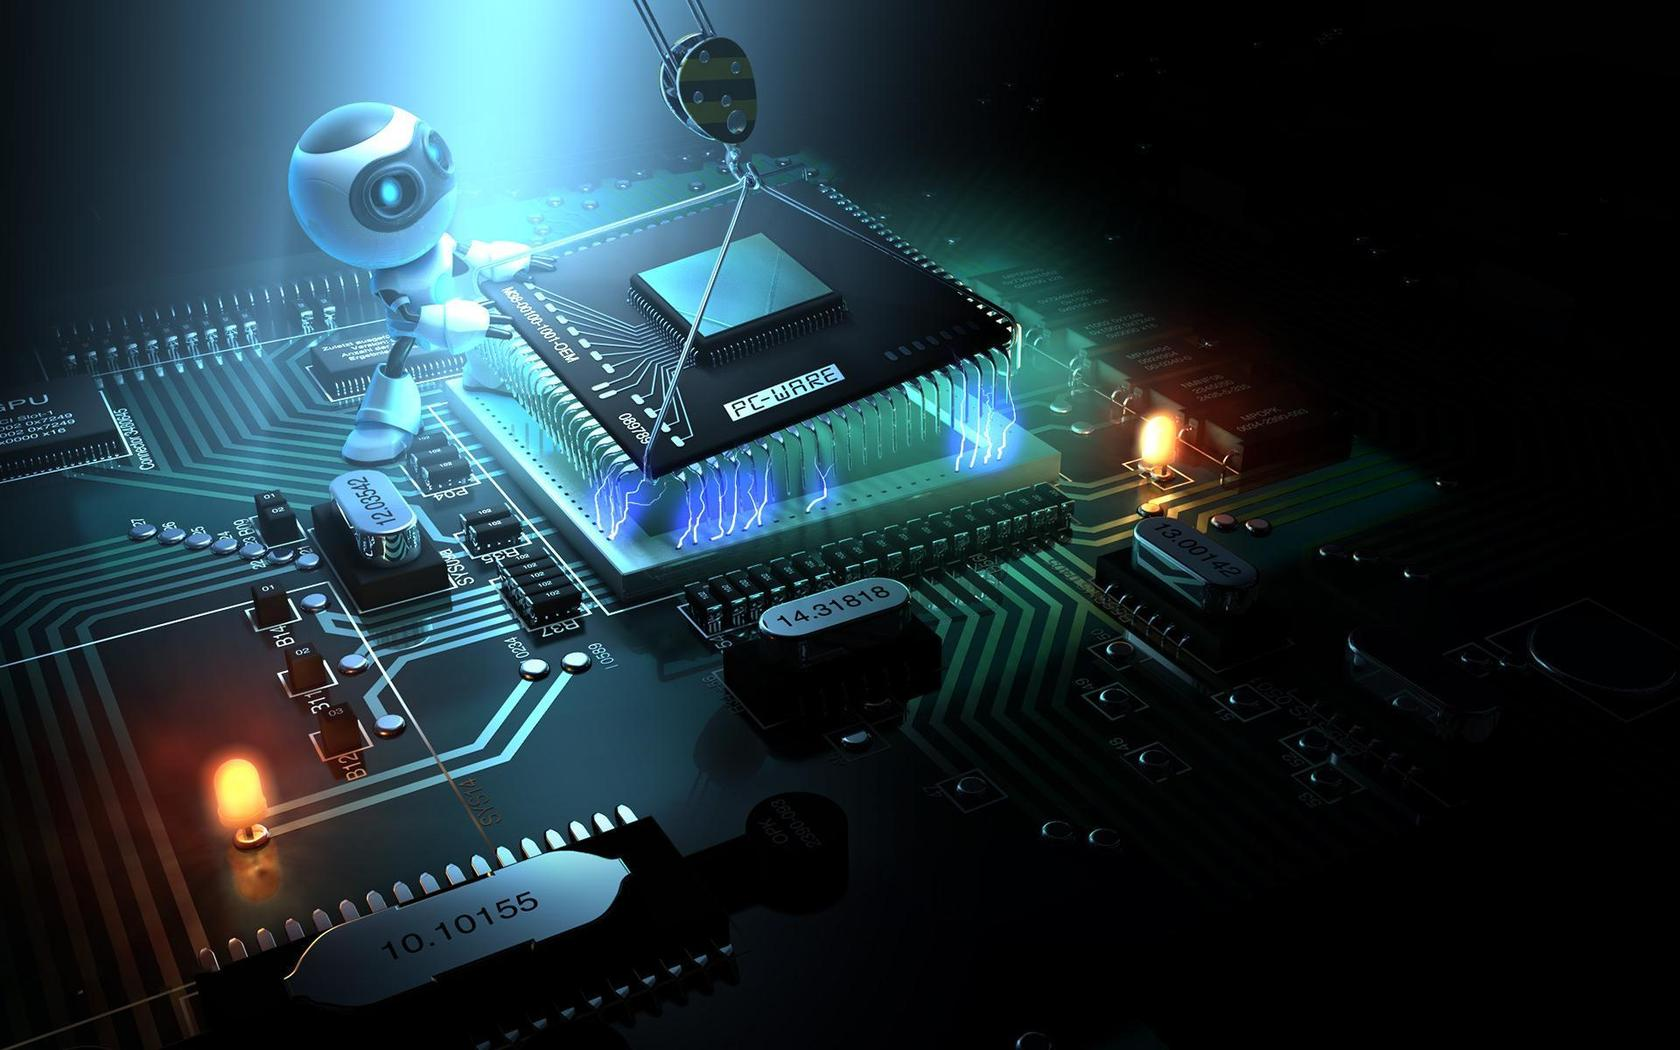 Computer Engineer Wallpapers Top Free Computer Engineer Backgrounds Wallpaperaccess